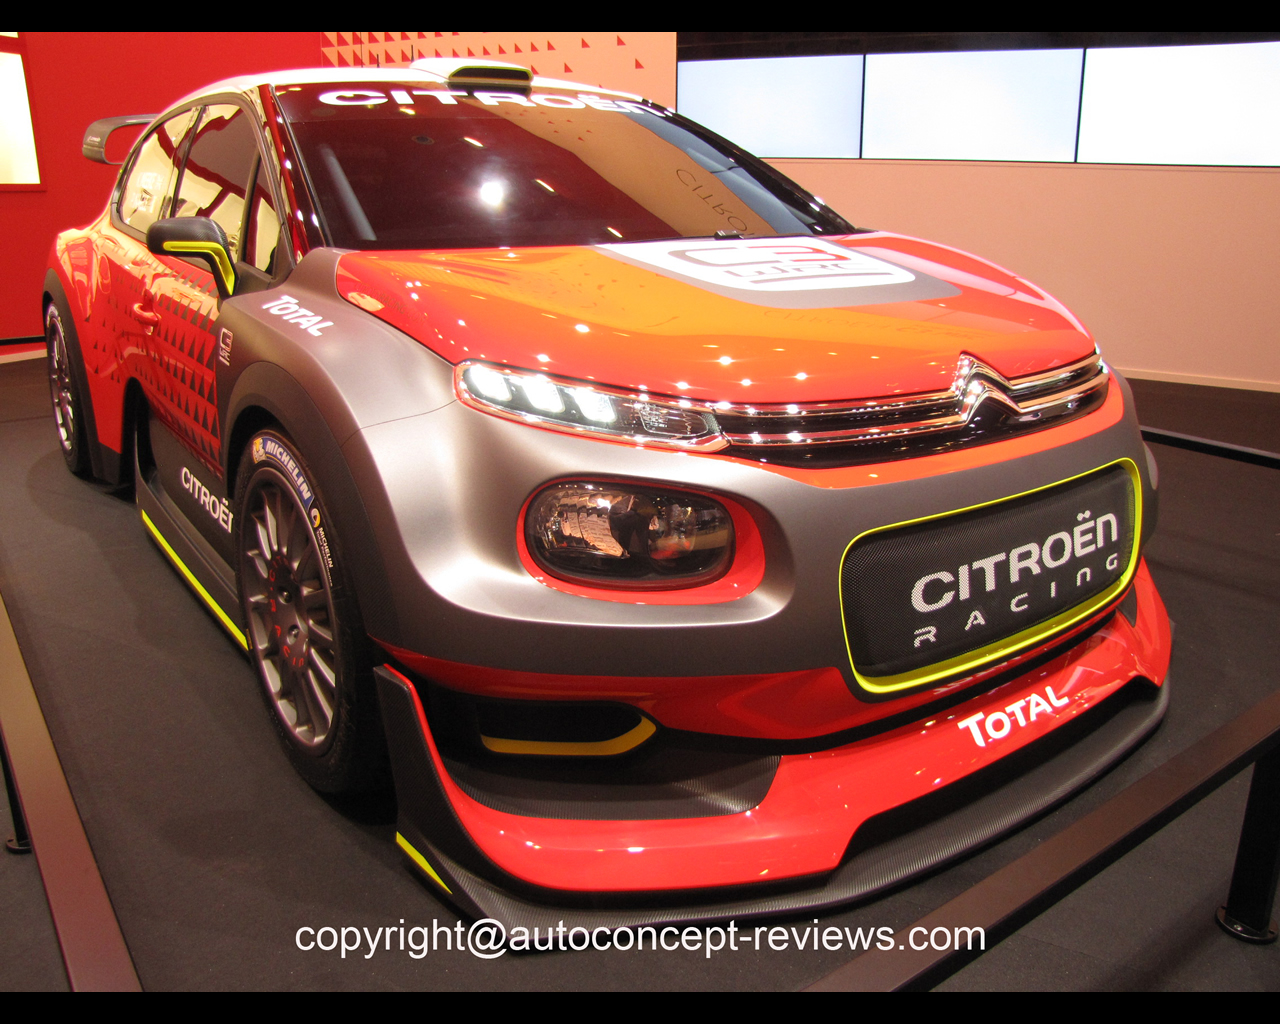 citroen c3 wrc concept car 2017. Black Bedroom Furniture Sets. Home Design Ideas